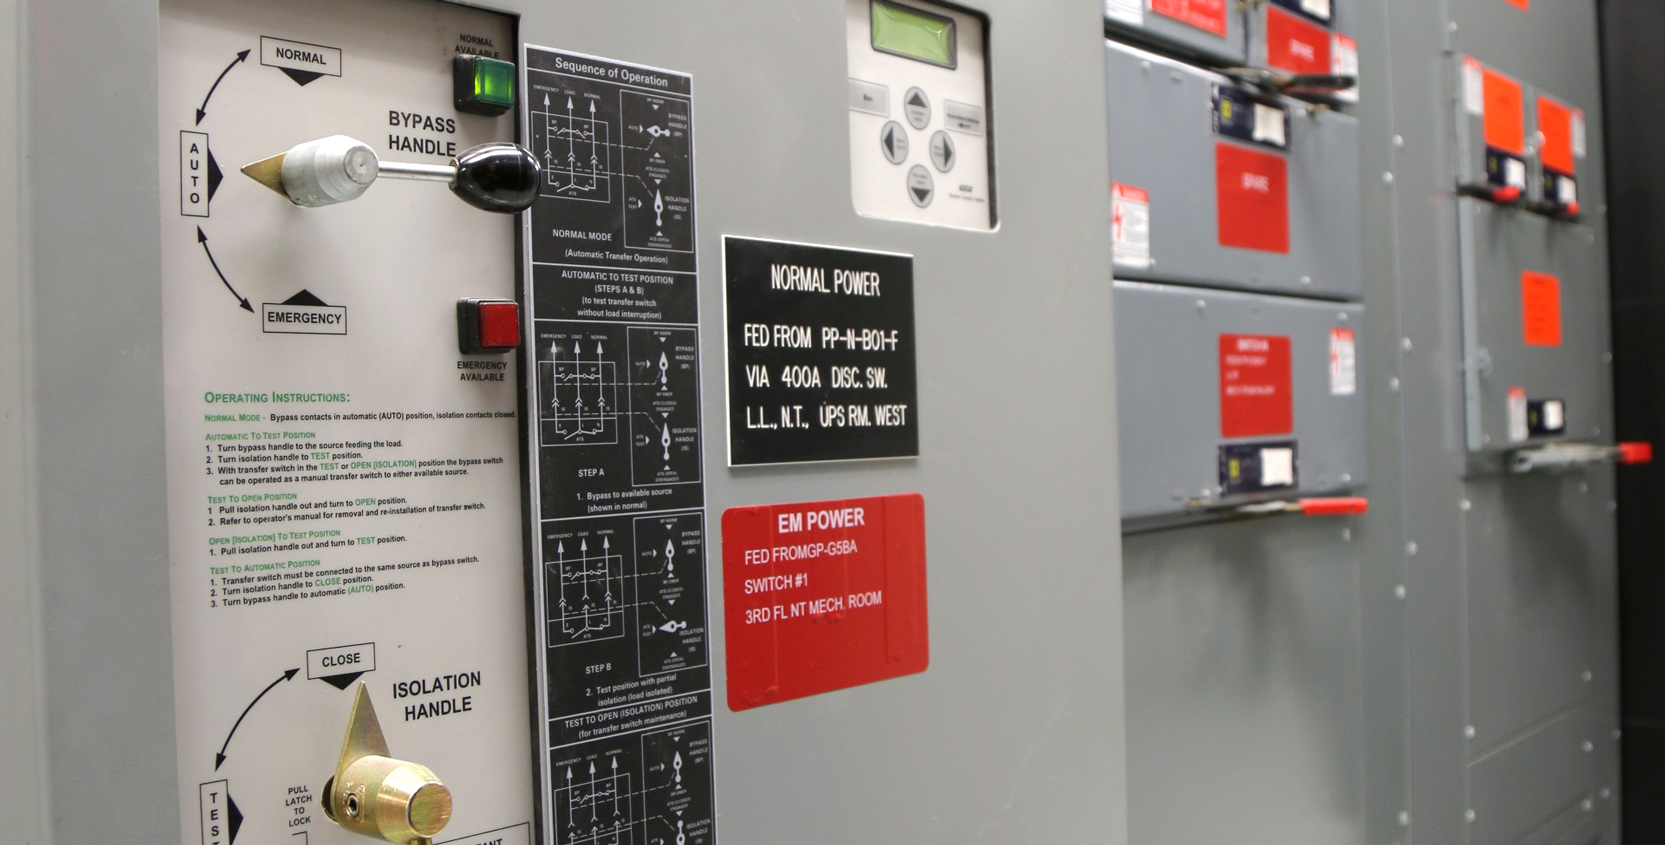 Beaumont-Royal-Oak-Emergency-Power-System-Upgrade-Electrical-3-1665x845